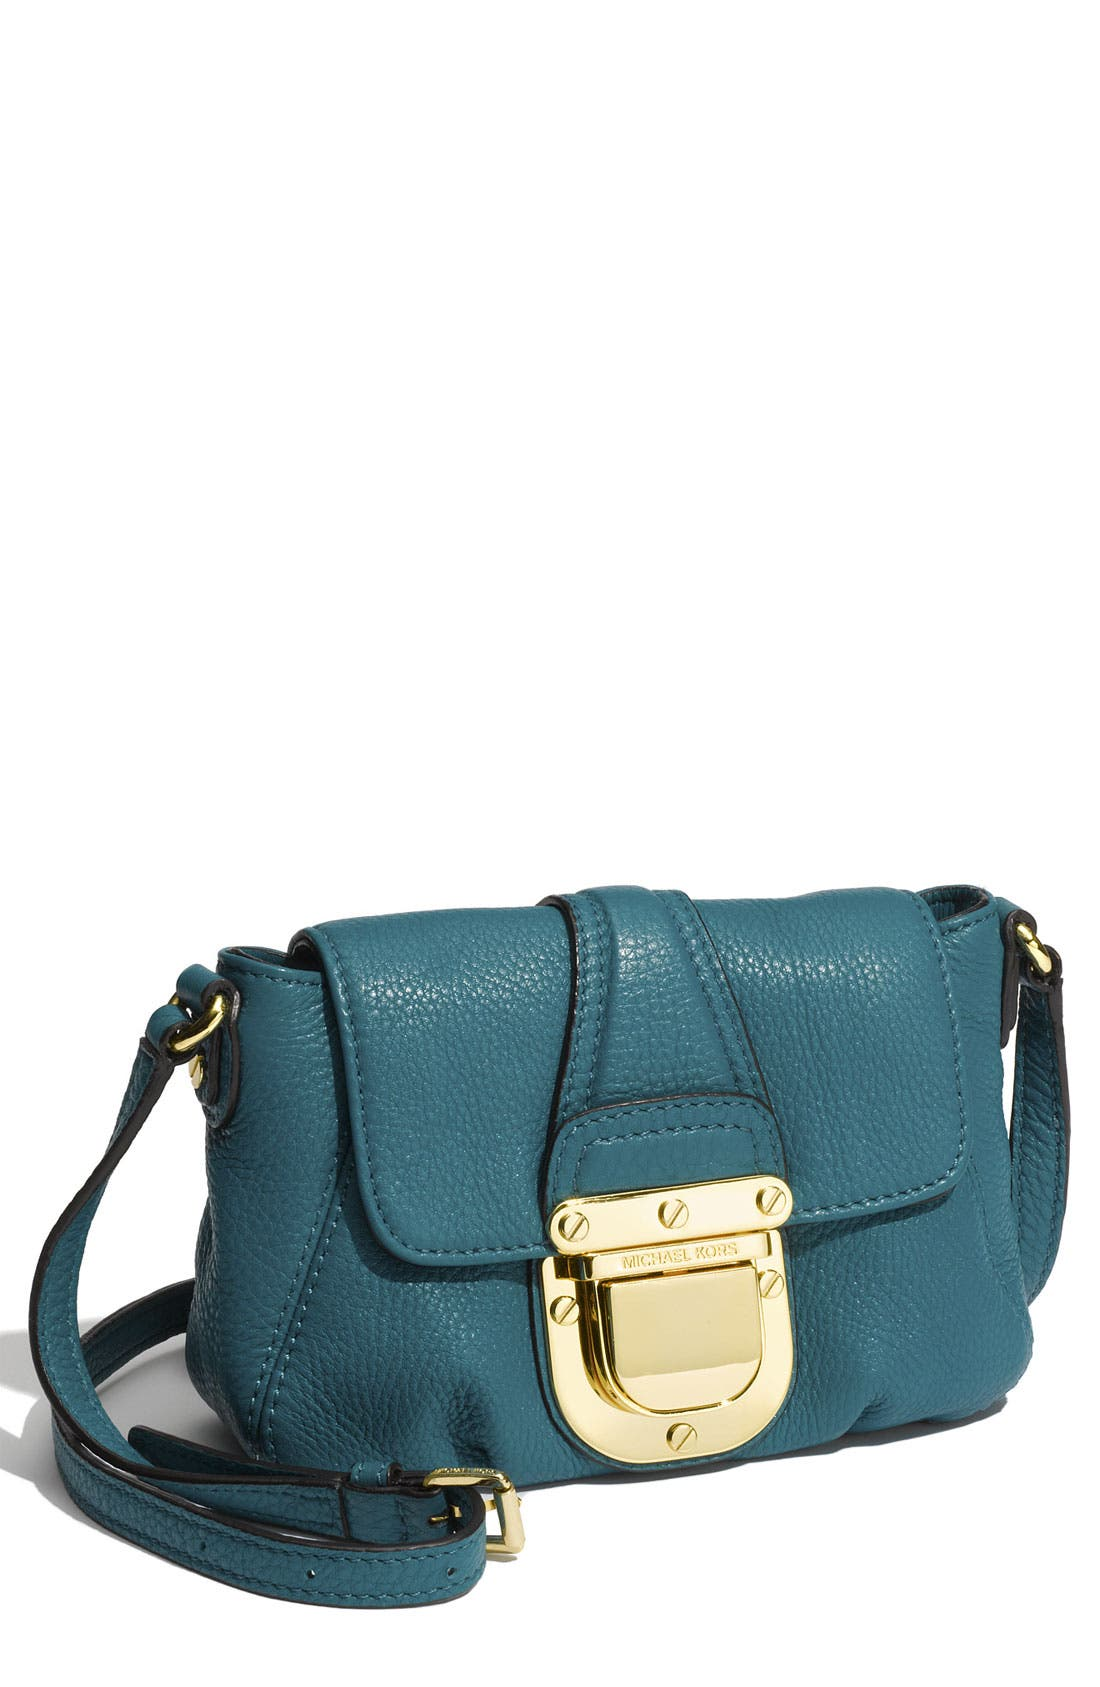 Alternate Image 1 Selected - MICHAEL Michael Kors 'Charlton' Crossbody Bag, Small